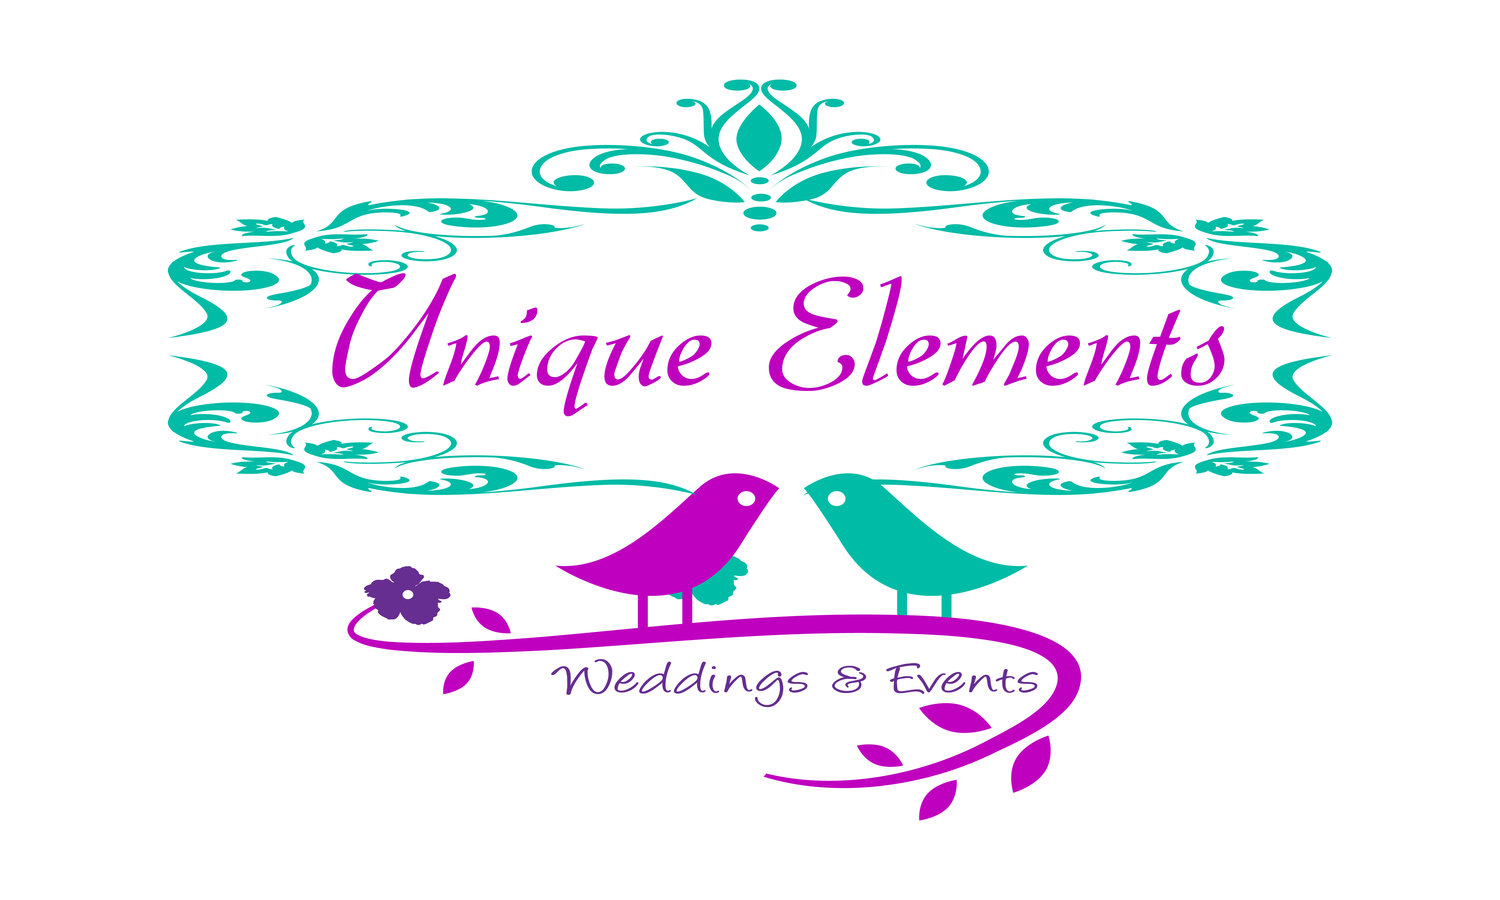 Unique Elements Weddings & Events